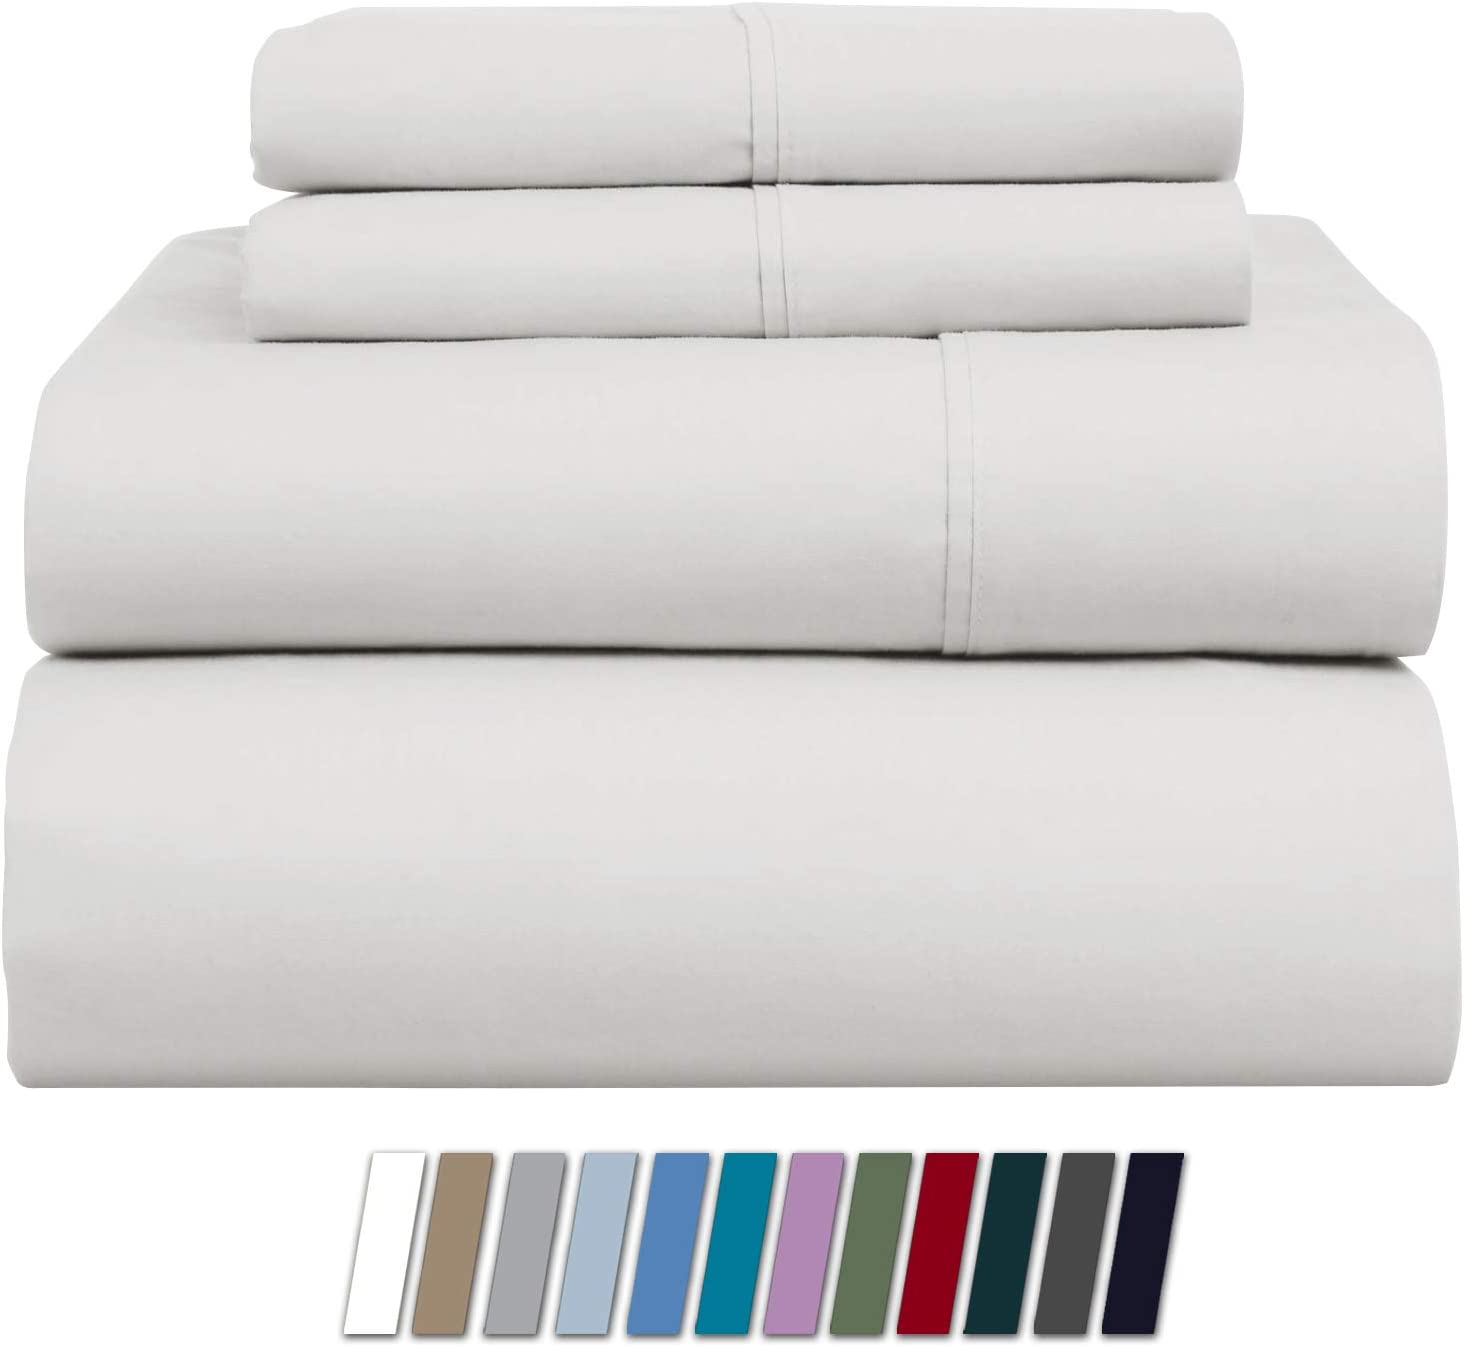 1000-Thread-Count 100% Pure Cotton Bed Sheets on Amazon - 4 Pc Queen Size White Sheet Set, Single Ply Long Staple Combed Cotton Yarns, Best Luxury Sateen Weave, Fits Mattress Upto 20'' Deep Pocket